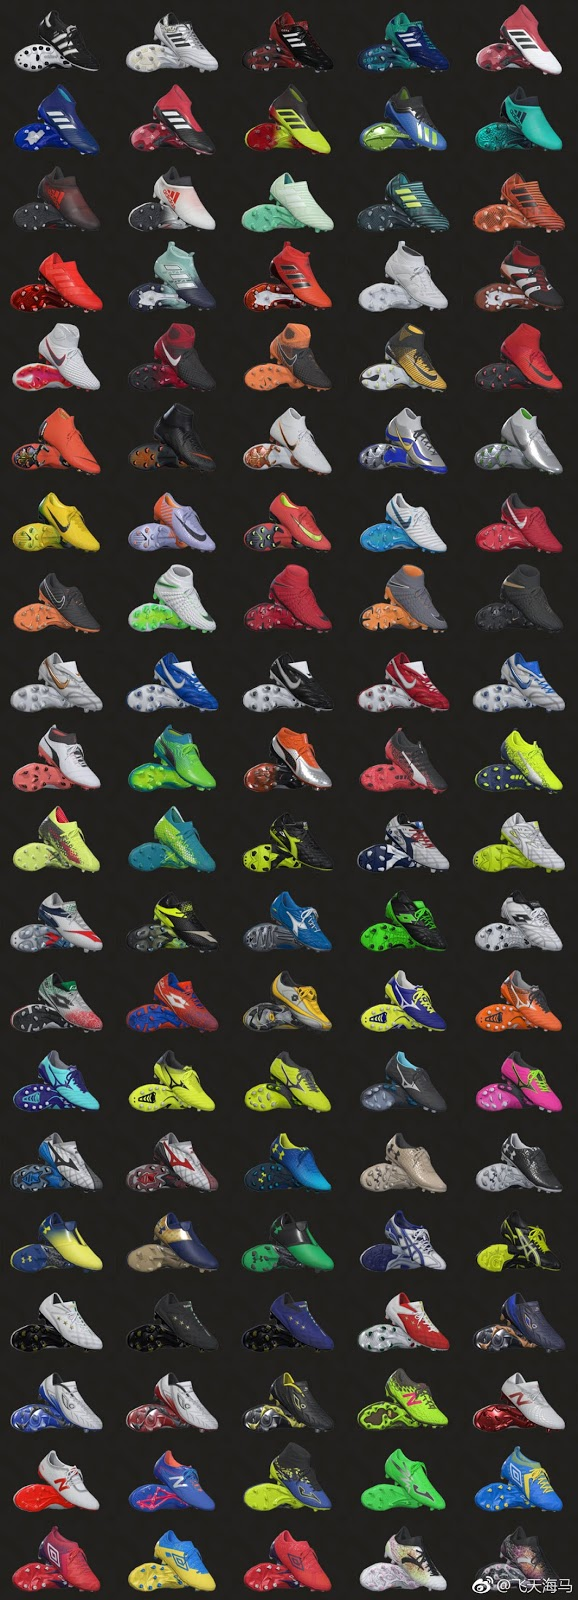 PES 2018 Bootpack by Paul81118